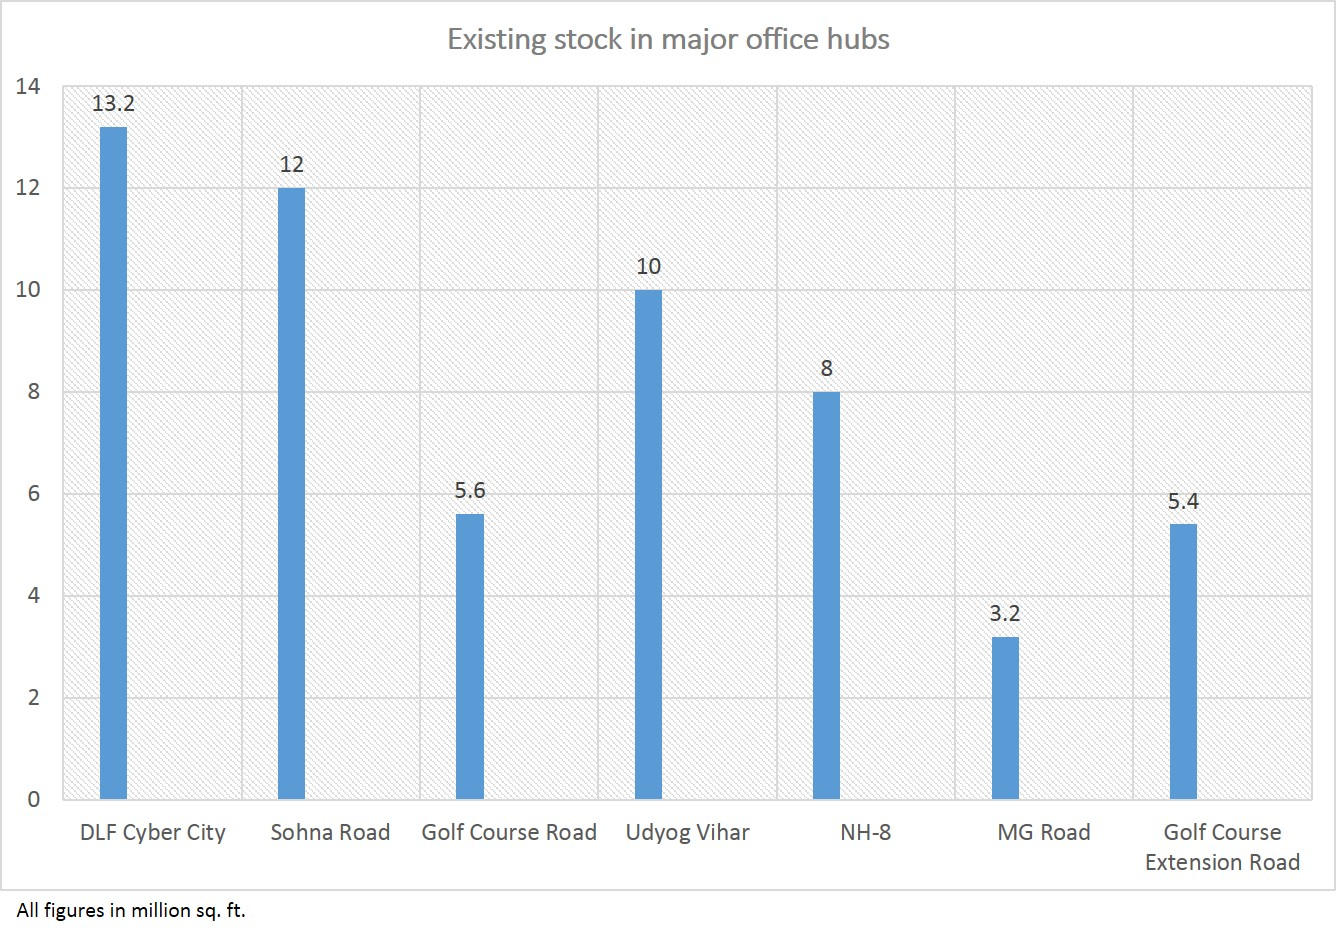 Existing stock in office hubs in Gurgaon